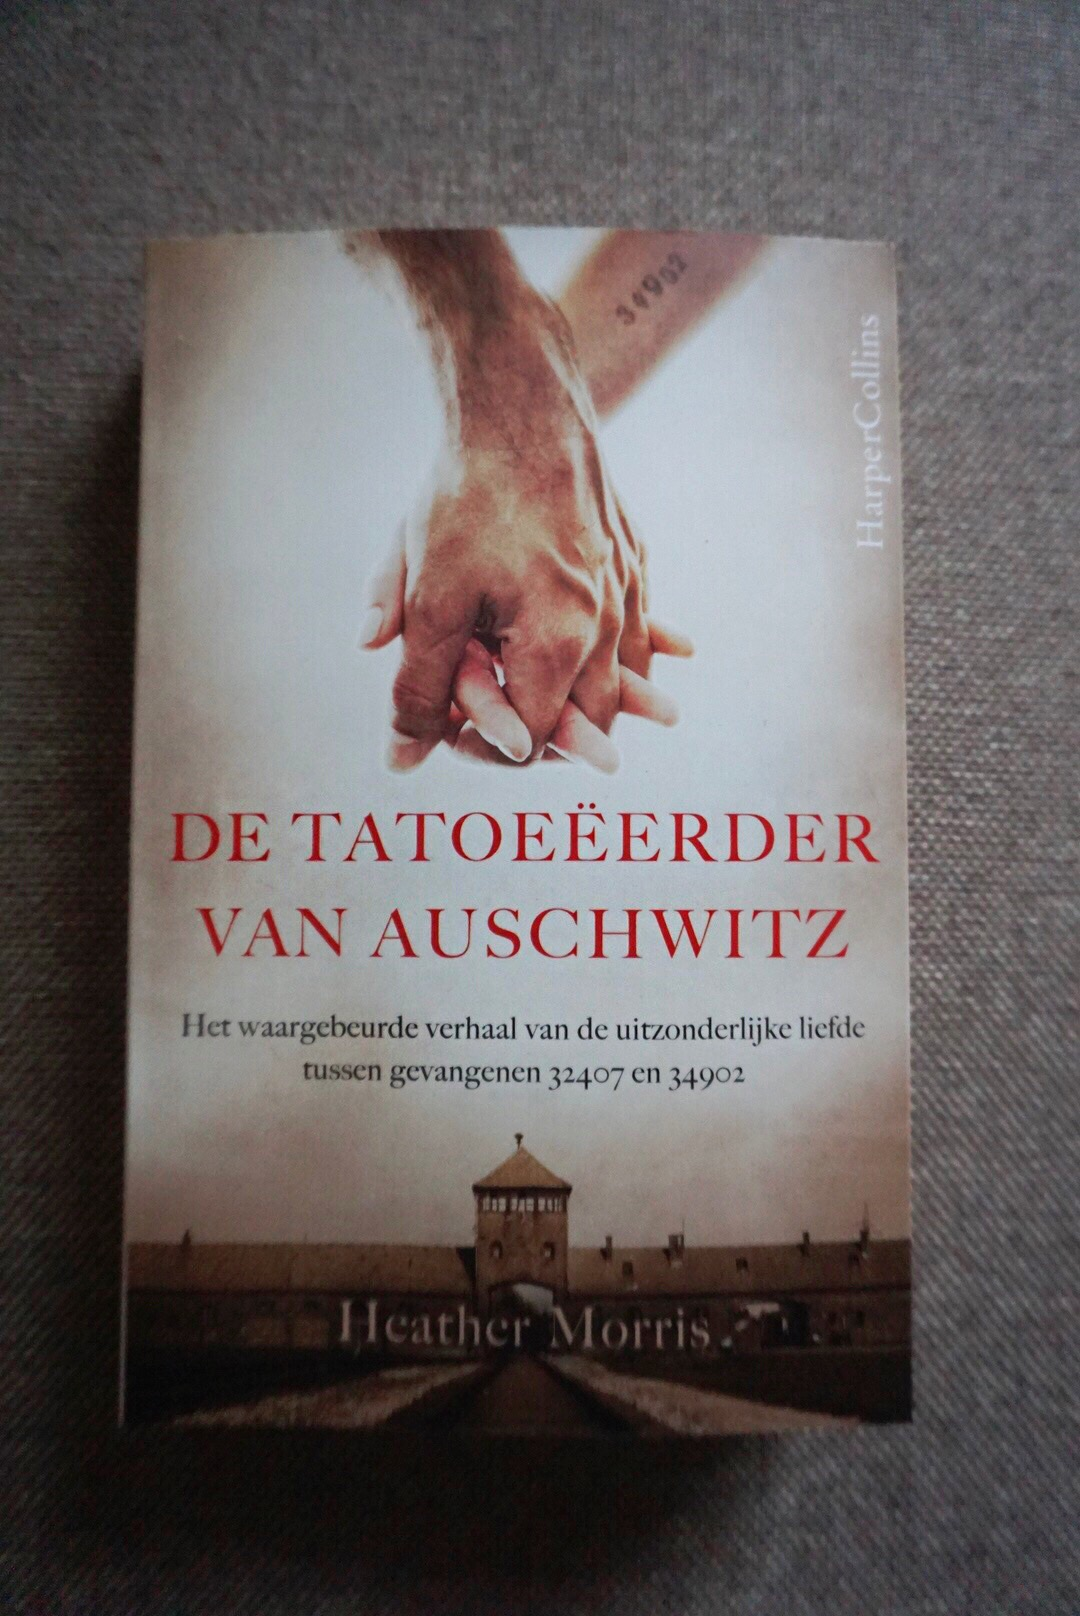 The tattooist of Auschwitz - De tatoeëerder van Auschwitz